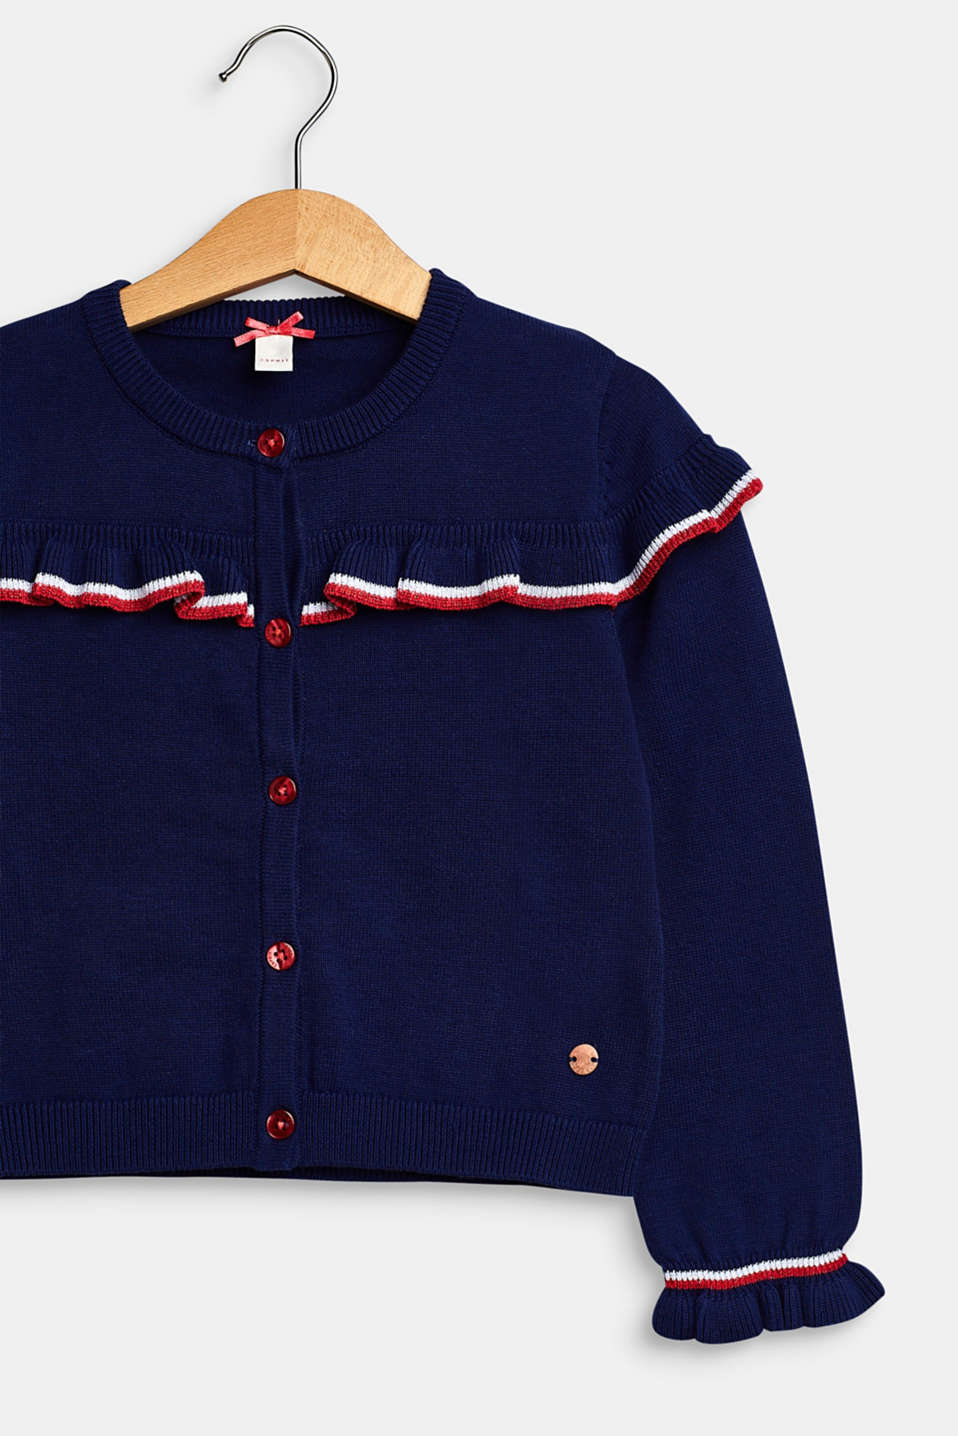 Frilled cardigan, 100% cotton, MARINE BLUE, detail image number 2